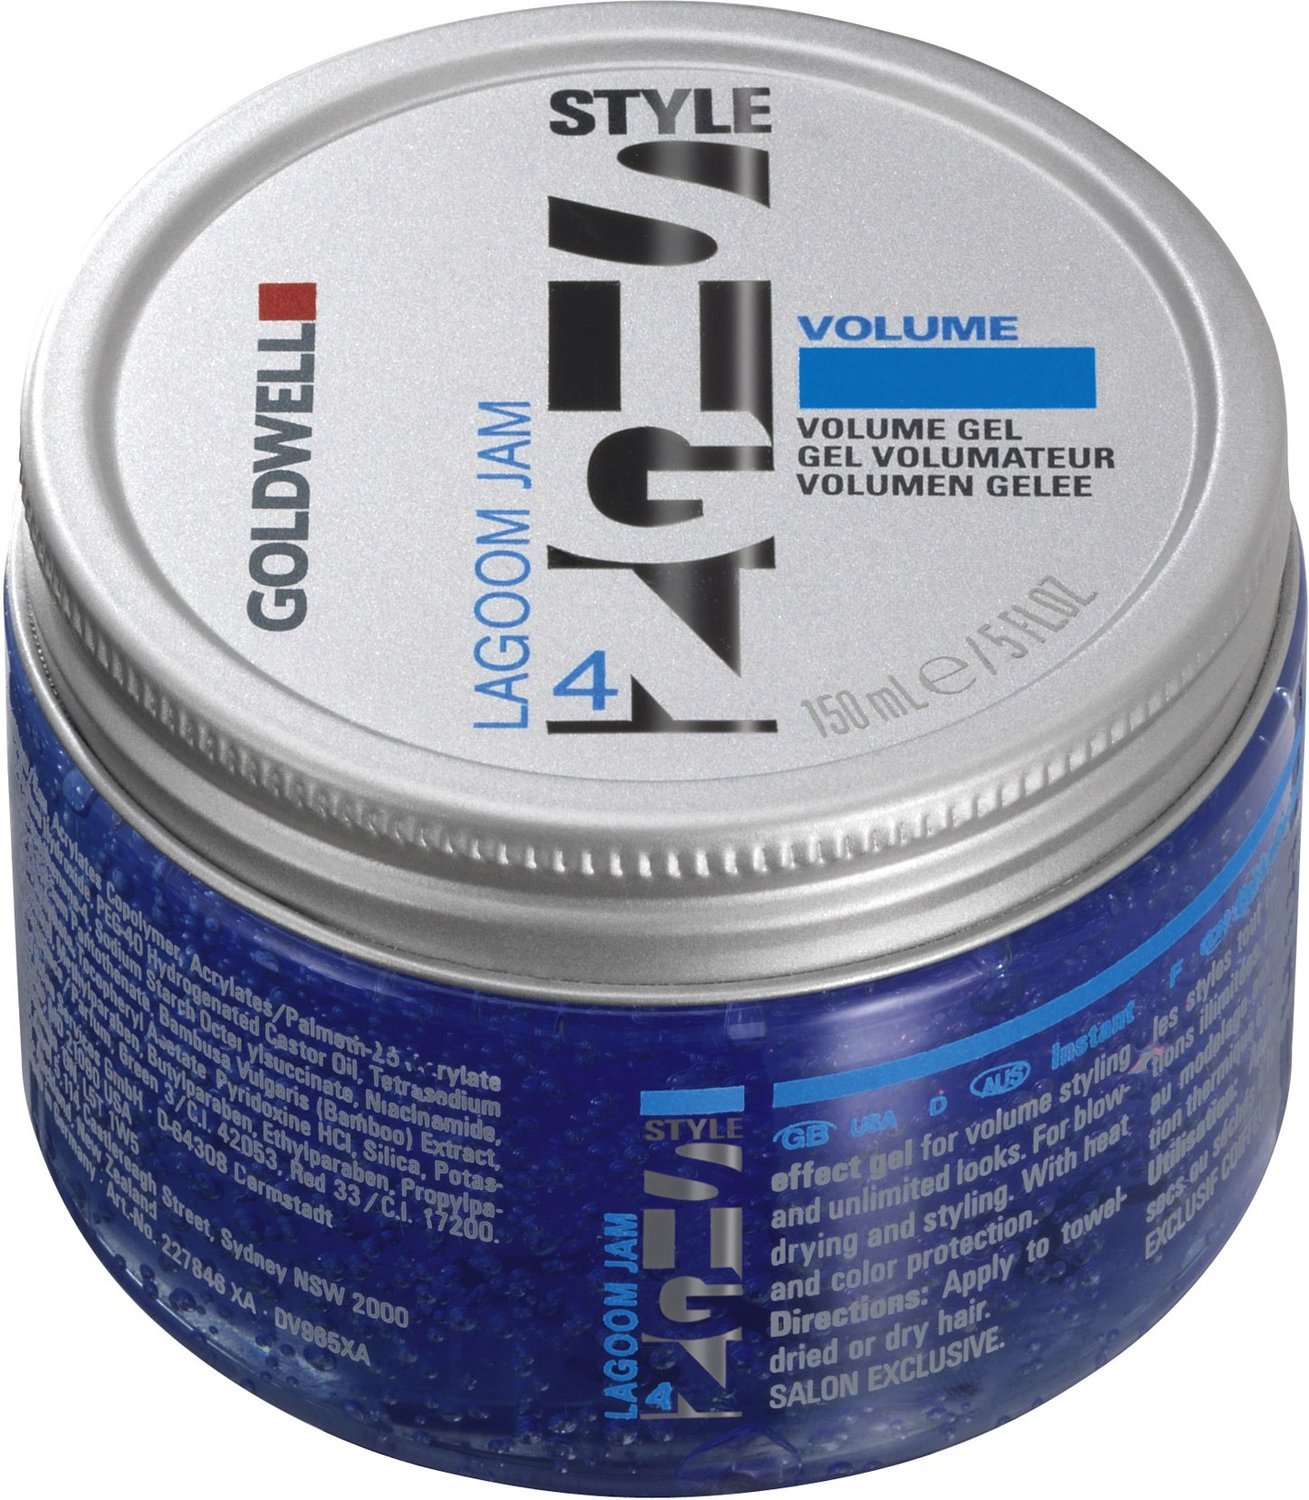 Goldwell Style Sign 4 Lagoom Jam Volume Gel, 5 Ounce